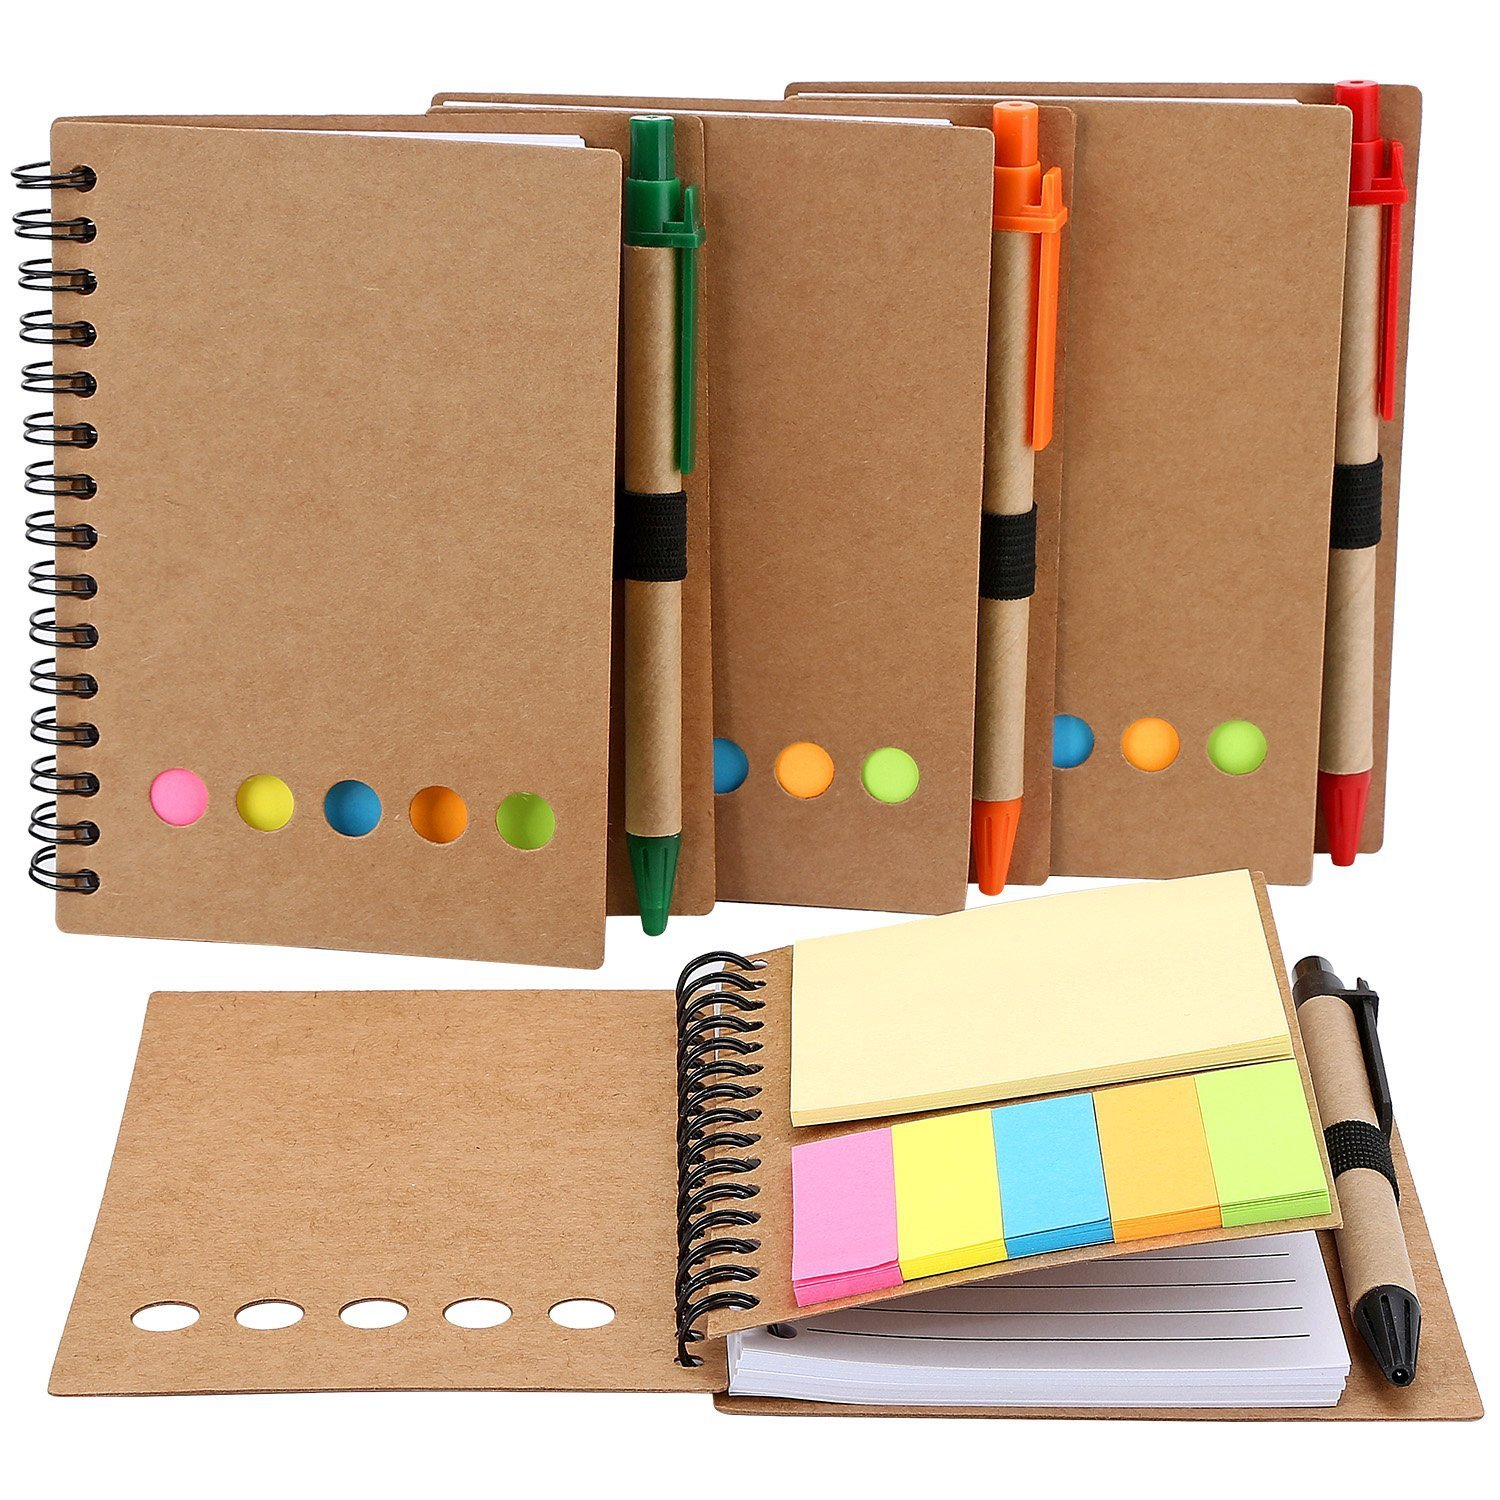 4 Pack Spiral Notebook Kraft Paper Notepad with Pen in Holder and Sticky Notes, Page Marker Colored Index Tabs Flags (Brown Cover) Md trade